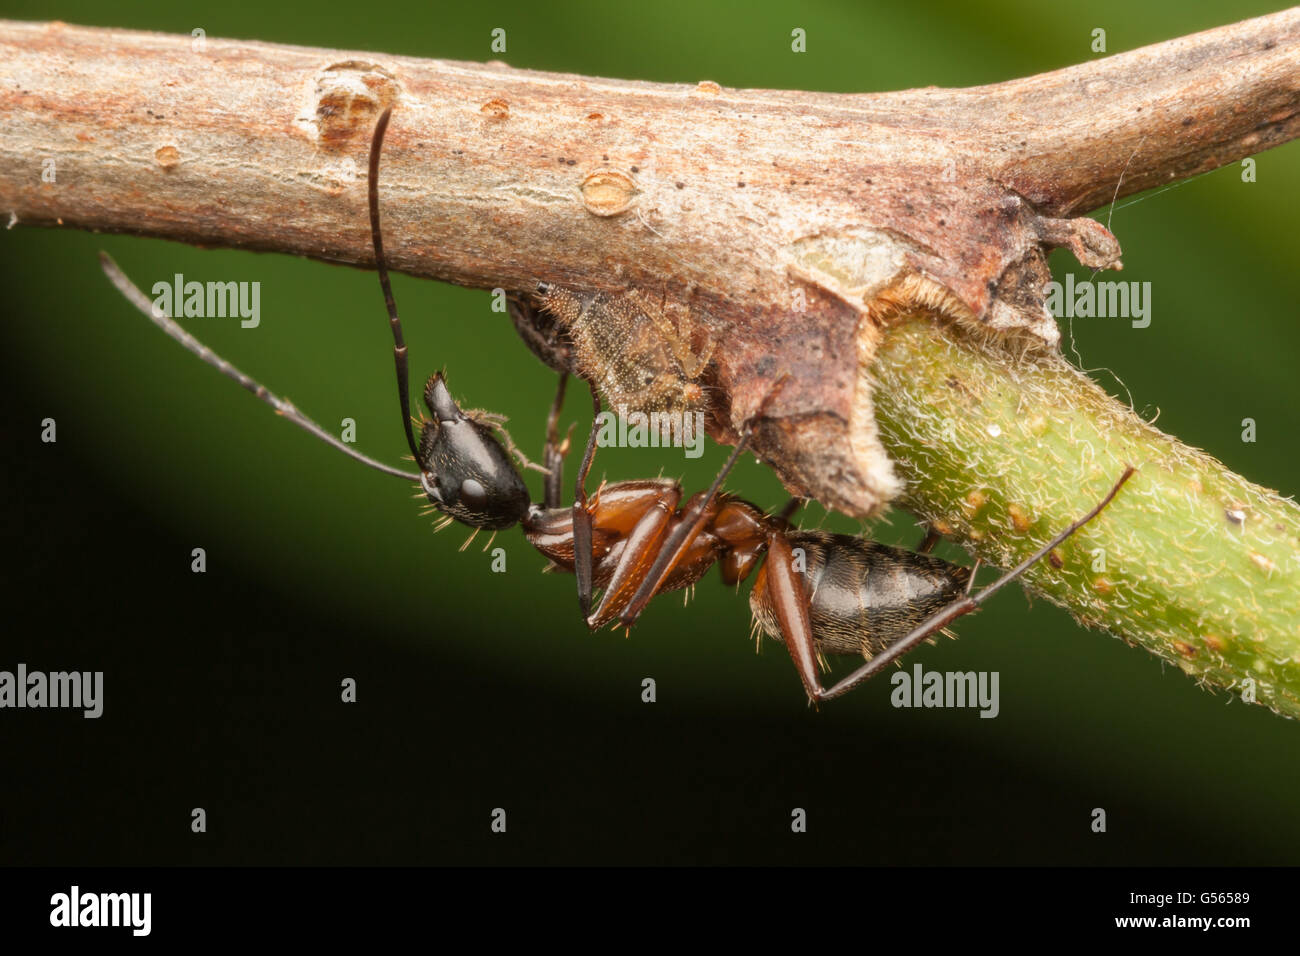 A Ferruginous Carpenter Ant (Camponotus chromaiodes) tends a treehopper nymph for its honeydew. - Stock Image